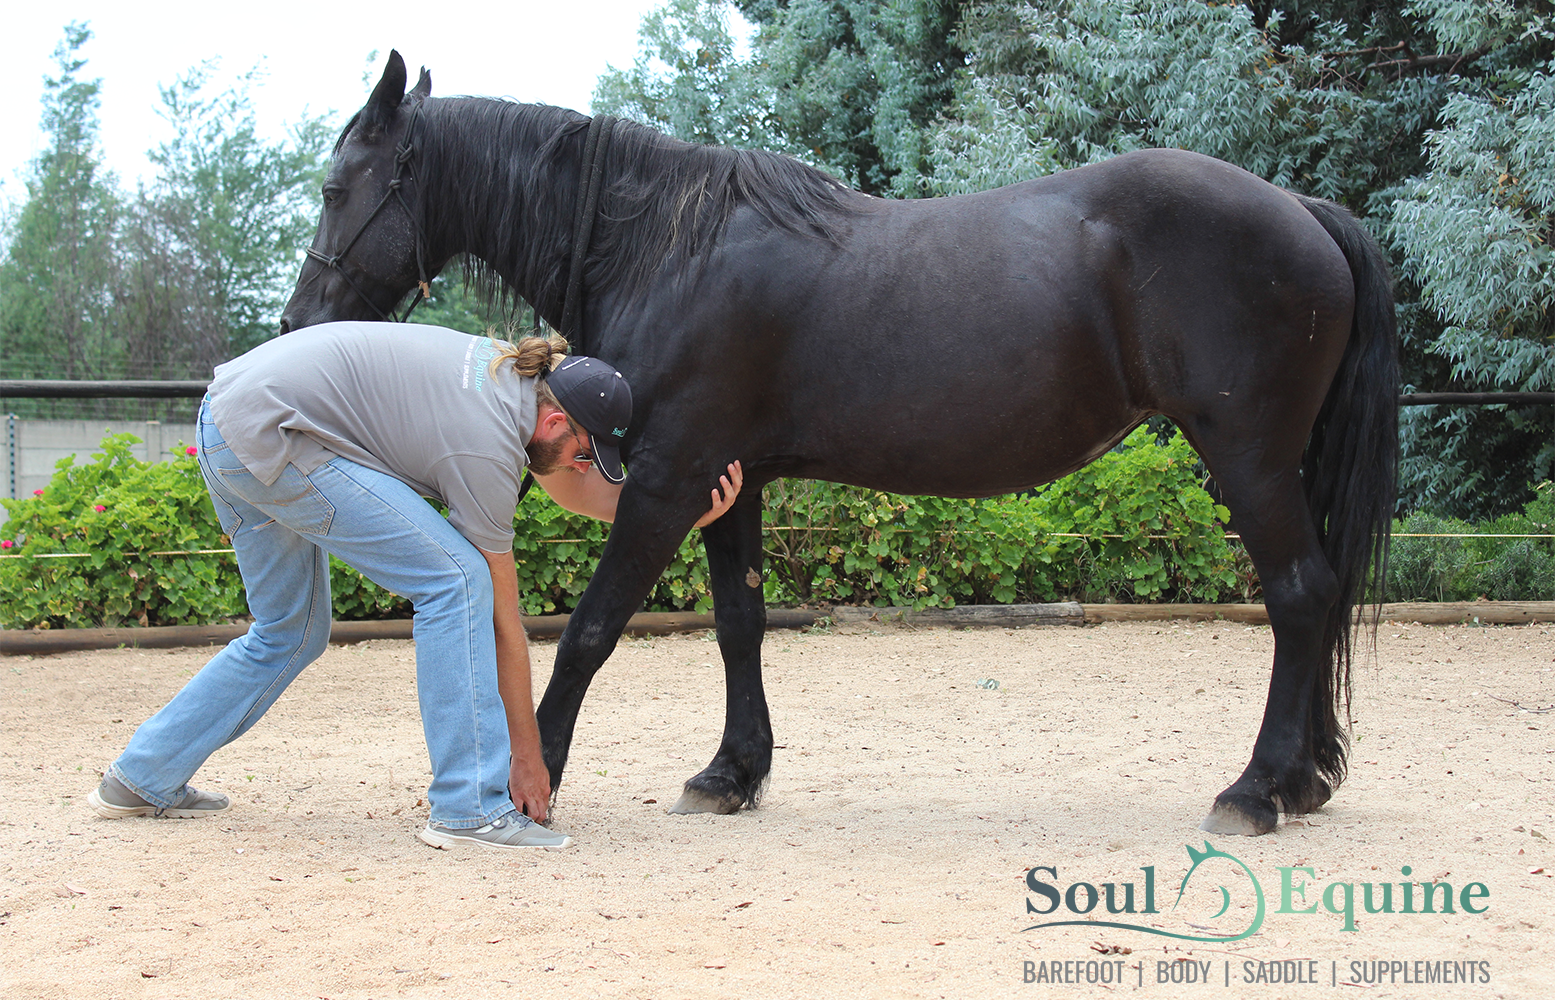 Welcome to Soul Equine